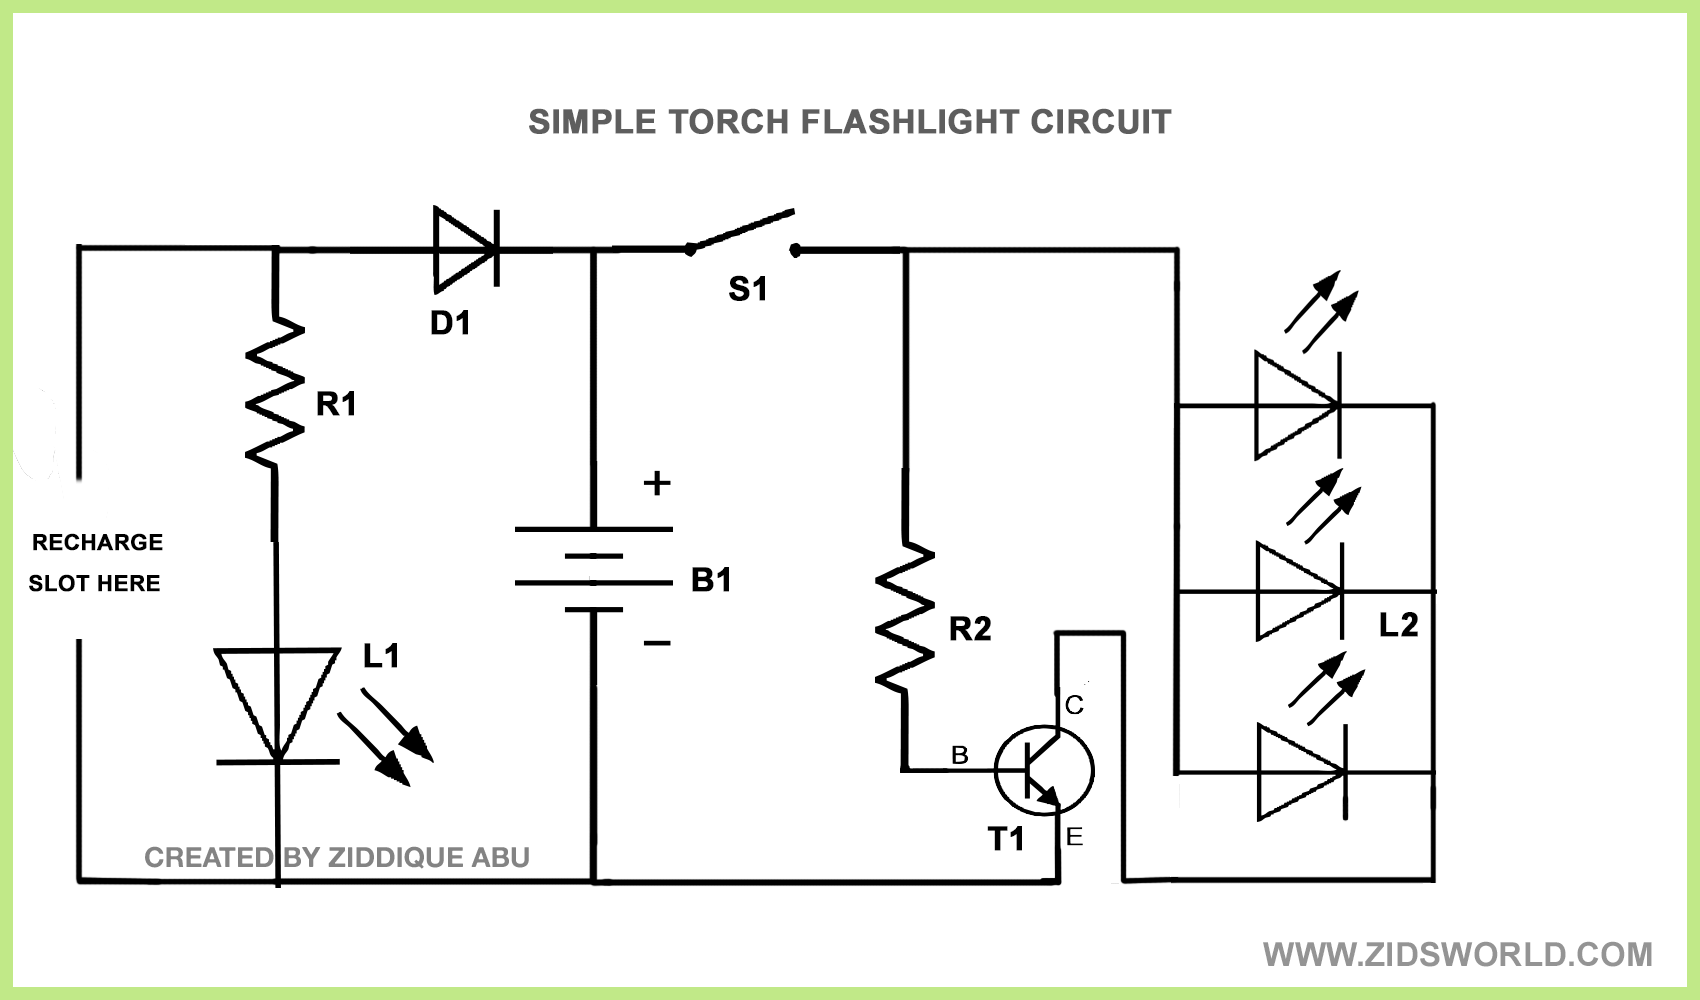 hight resolution of home made bright white led torch flashlight circuit diagram diy mobile phone battery for led lighting electronic circuits diagram